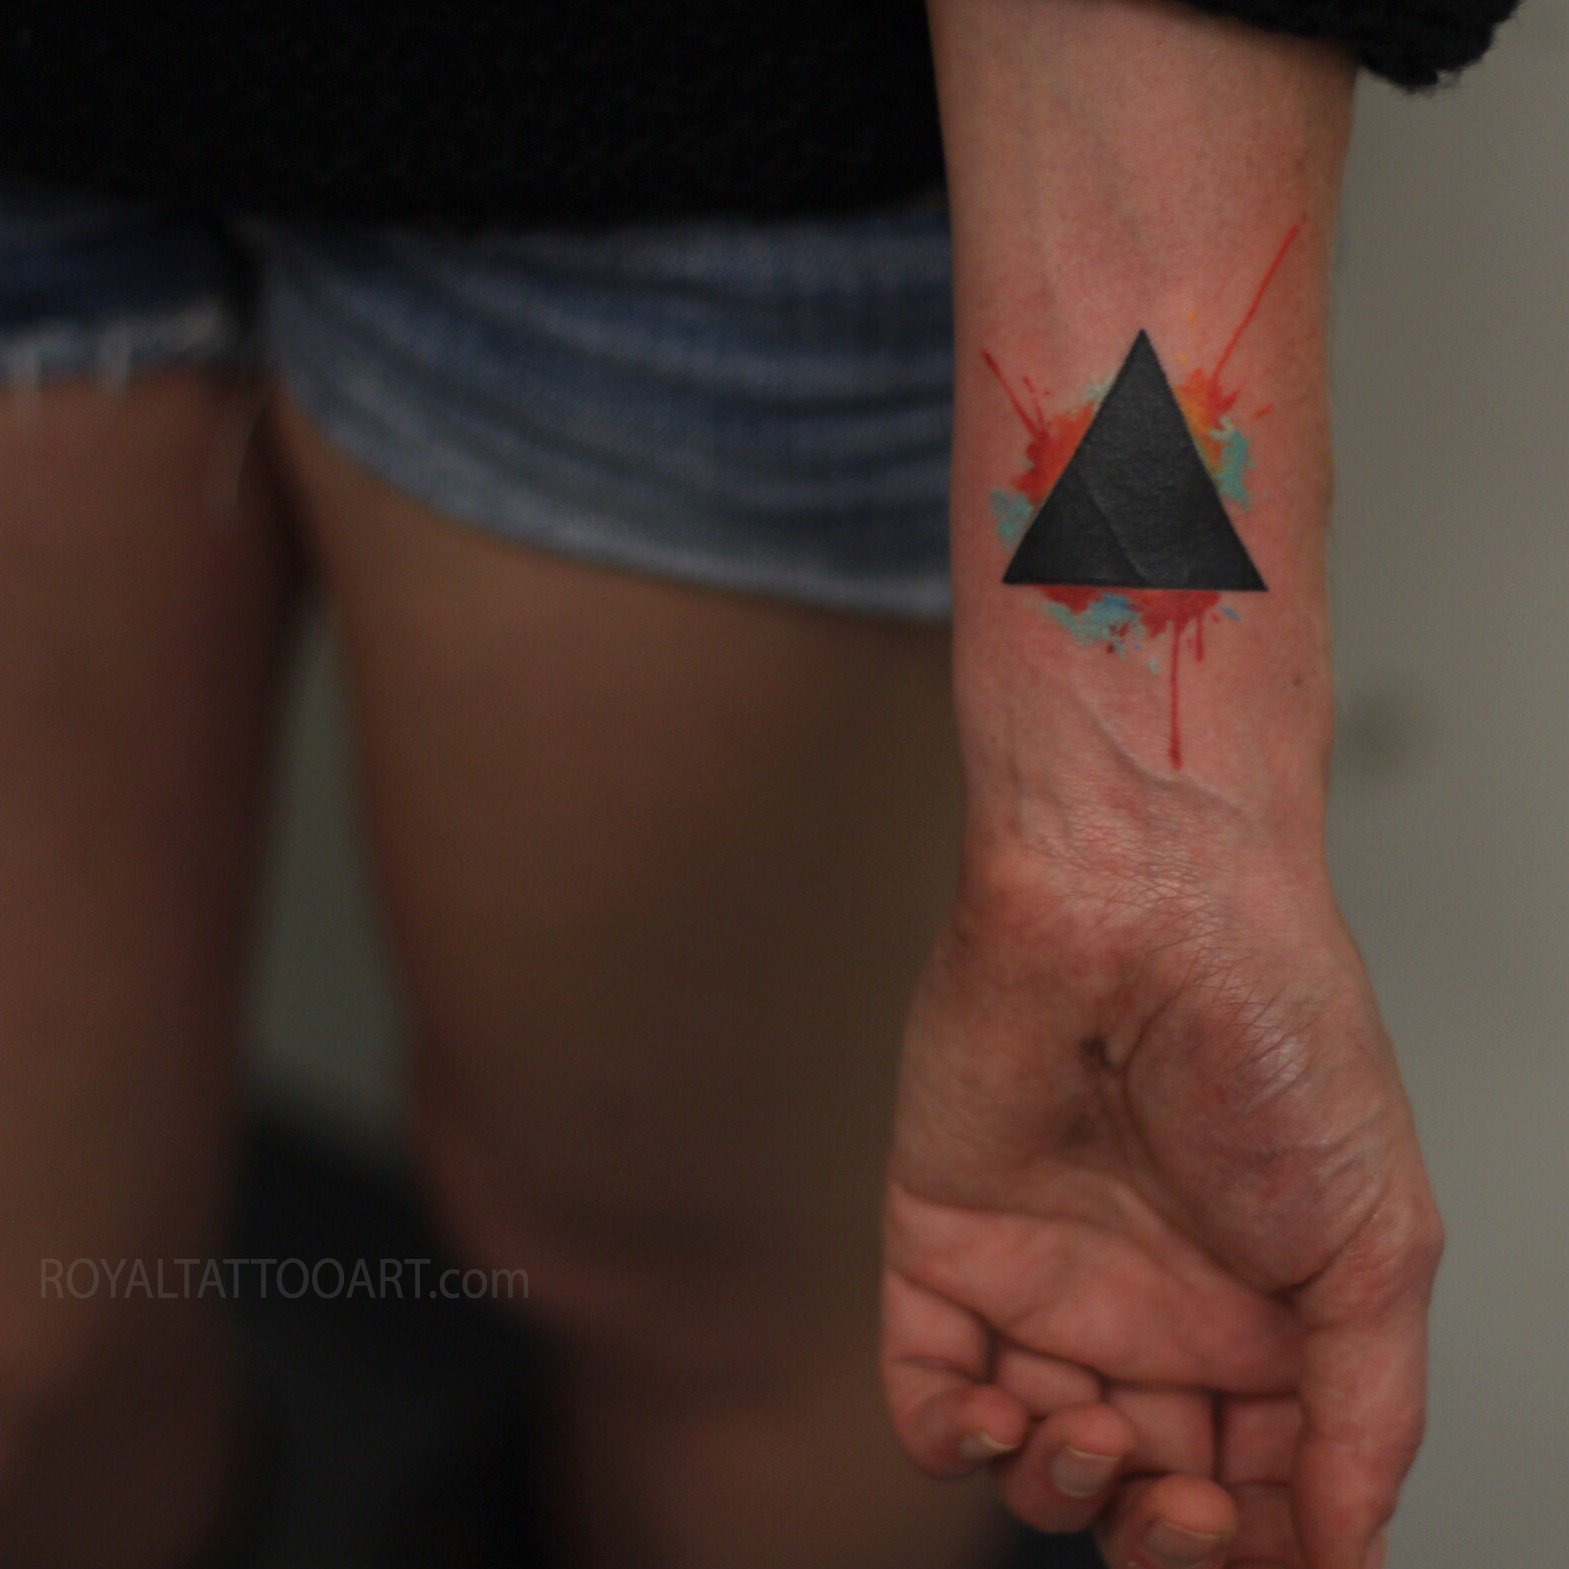 tattoo triangle black abstract watercolor splatter tattoo ink nyc new york Royal